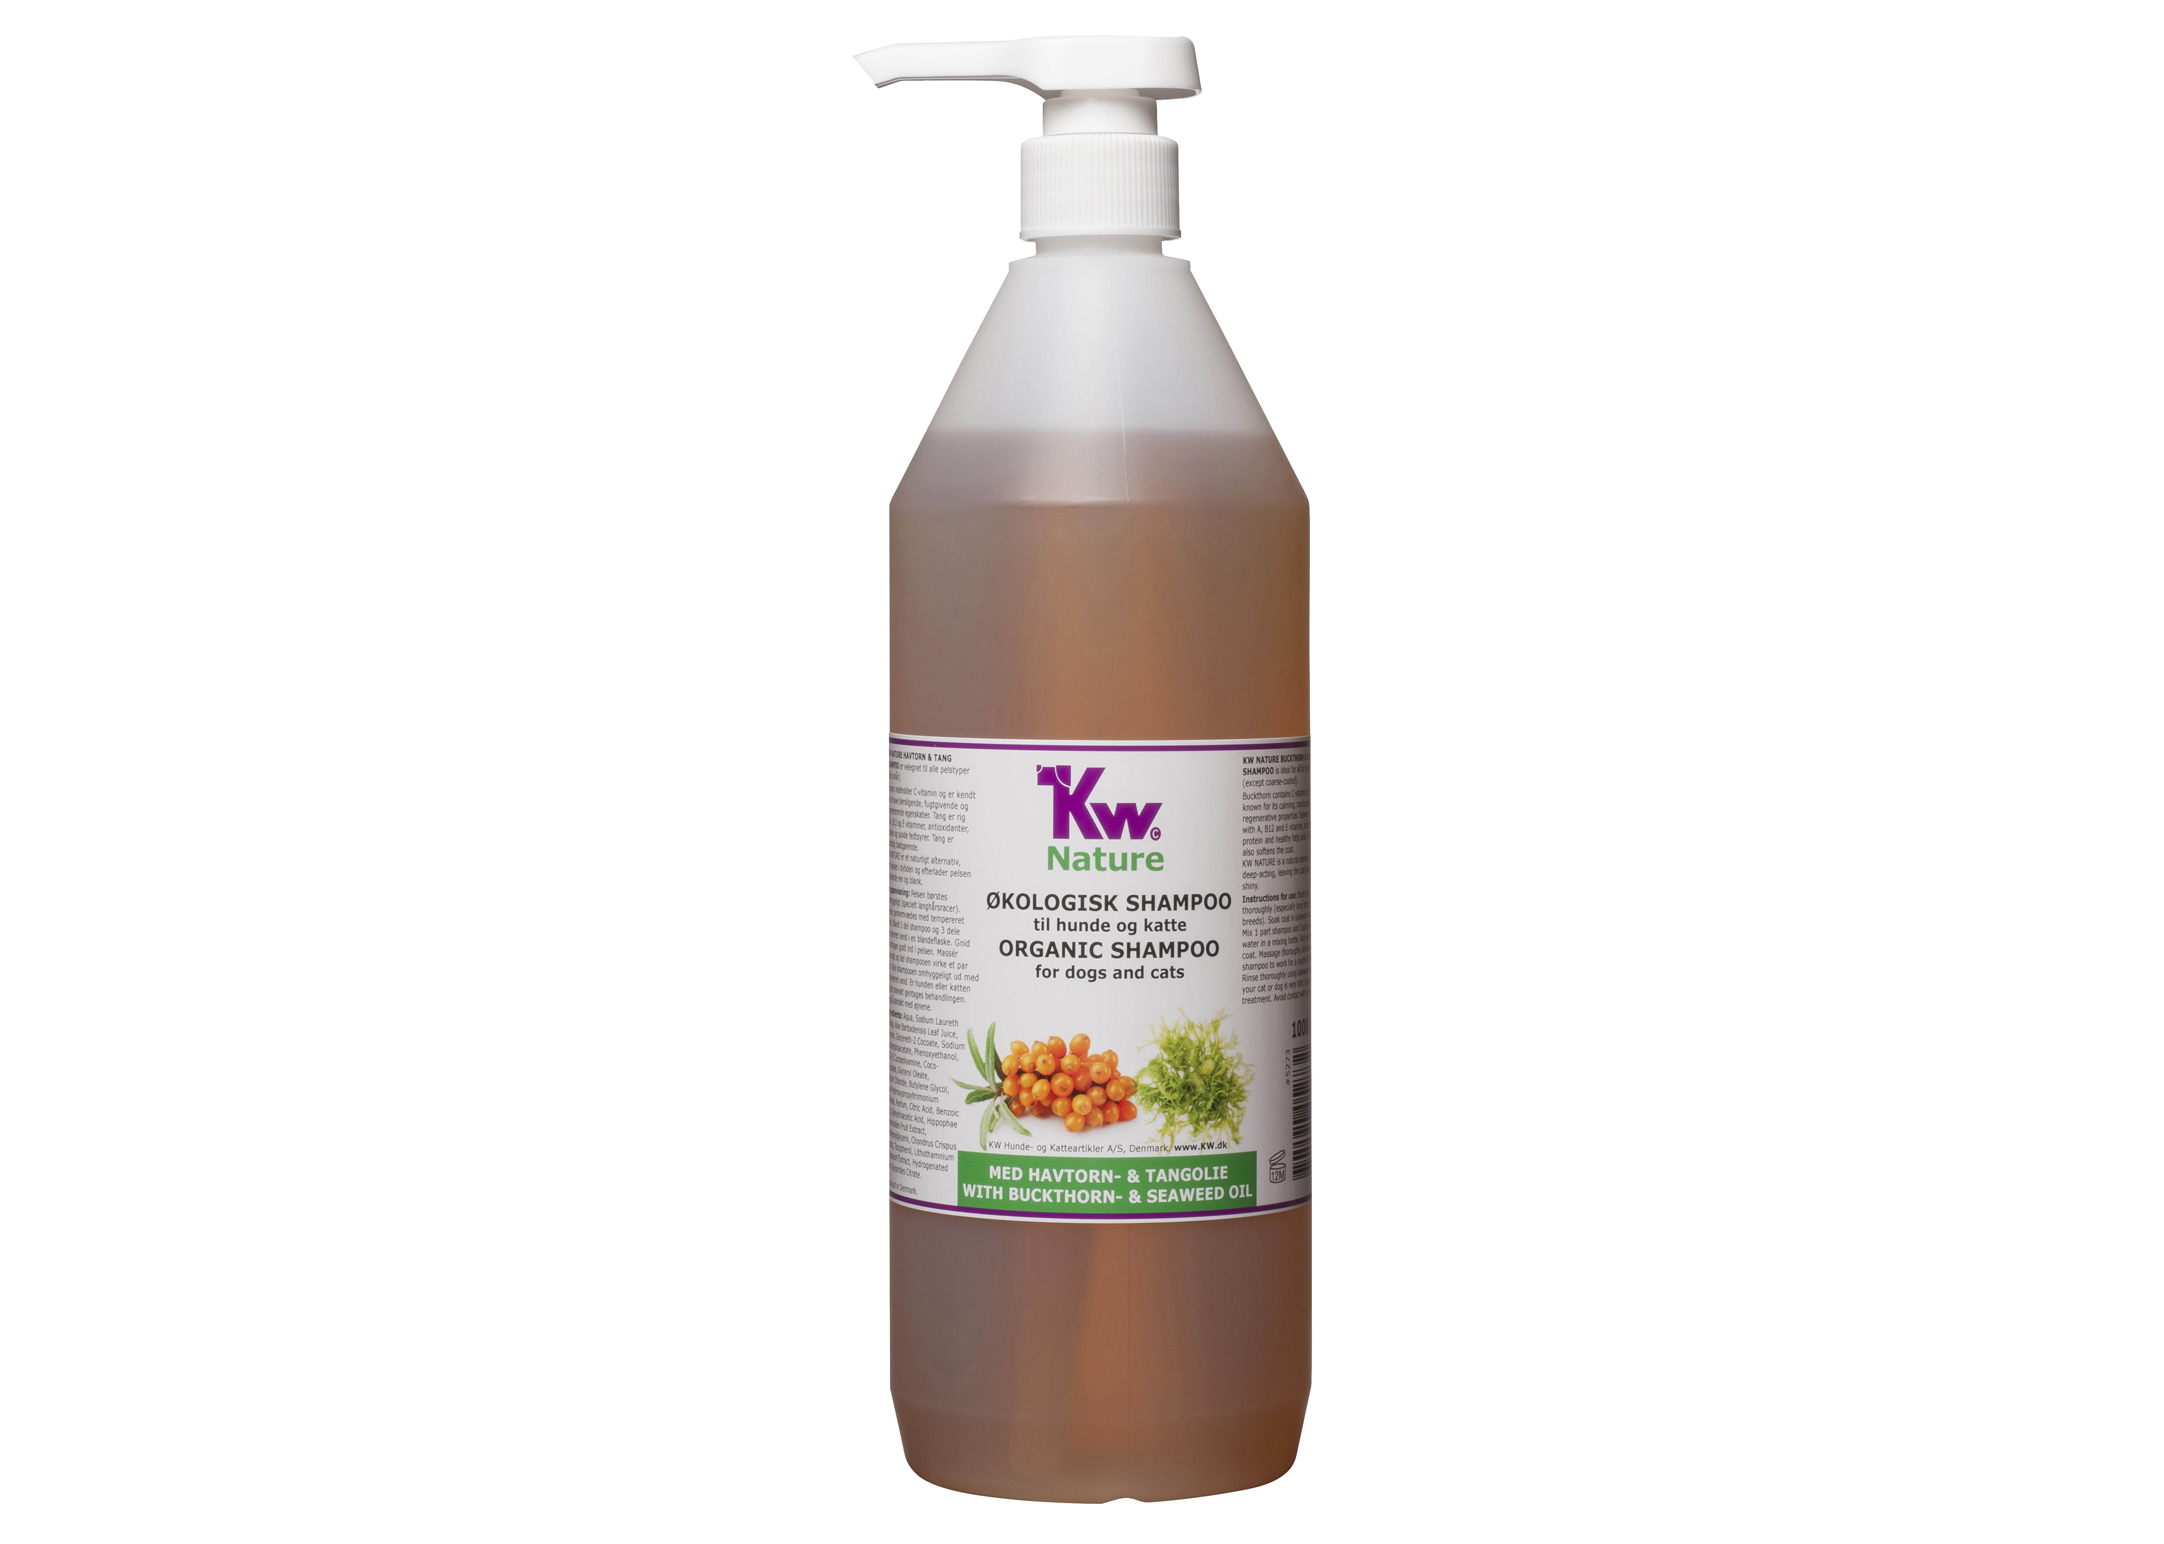 KW Nature Buckthorn & Seaweed Oil Shampooing 1L